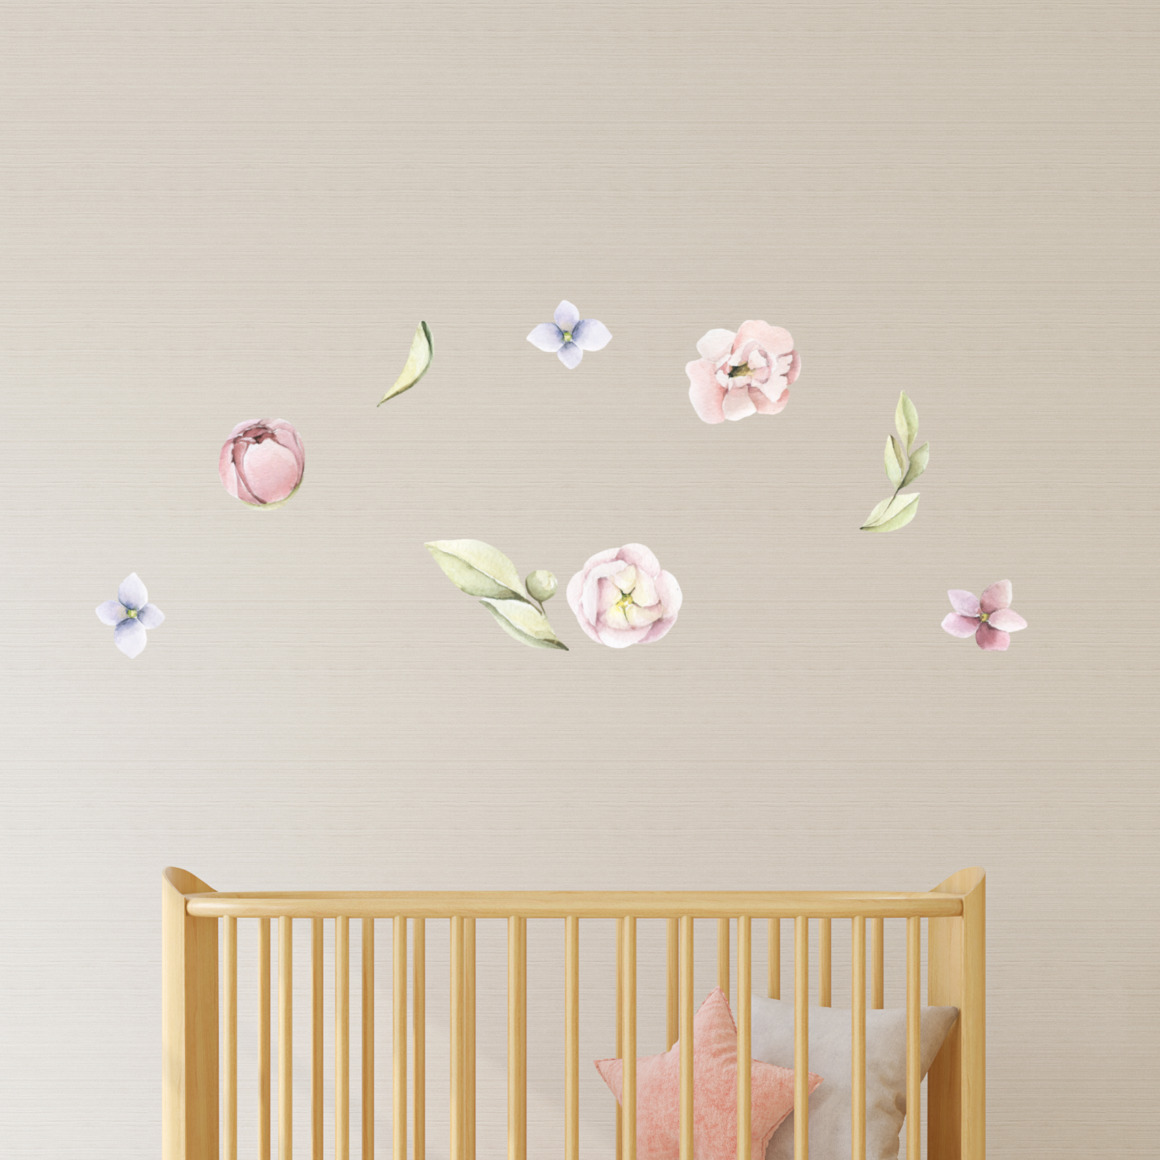 Fabric wall decals - Floral   Trada Marketplace